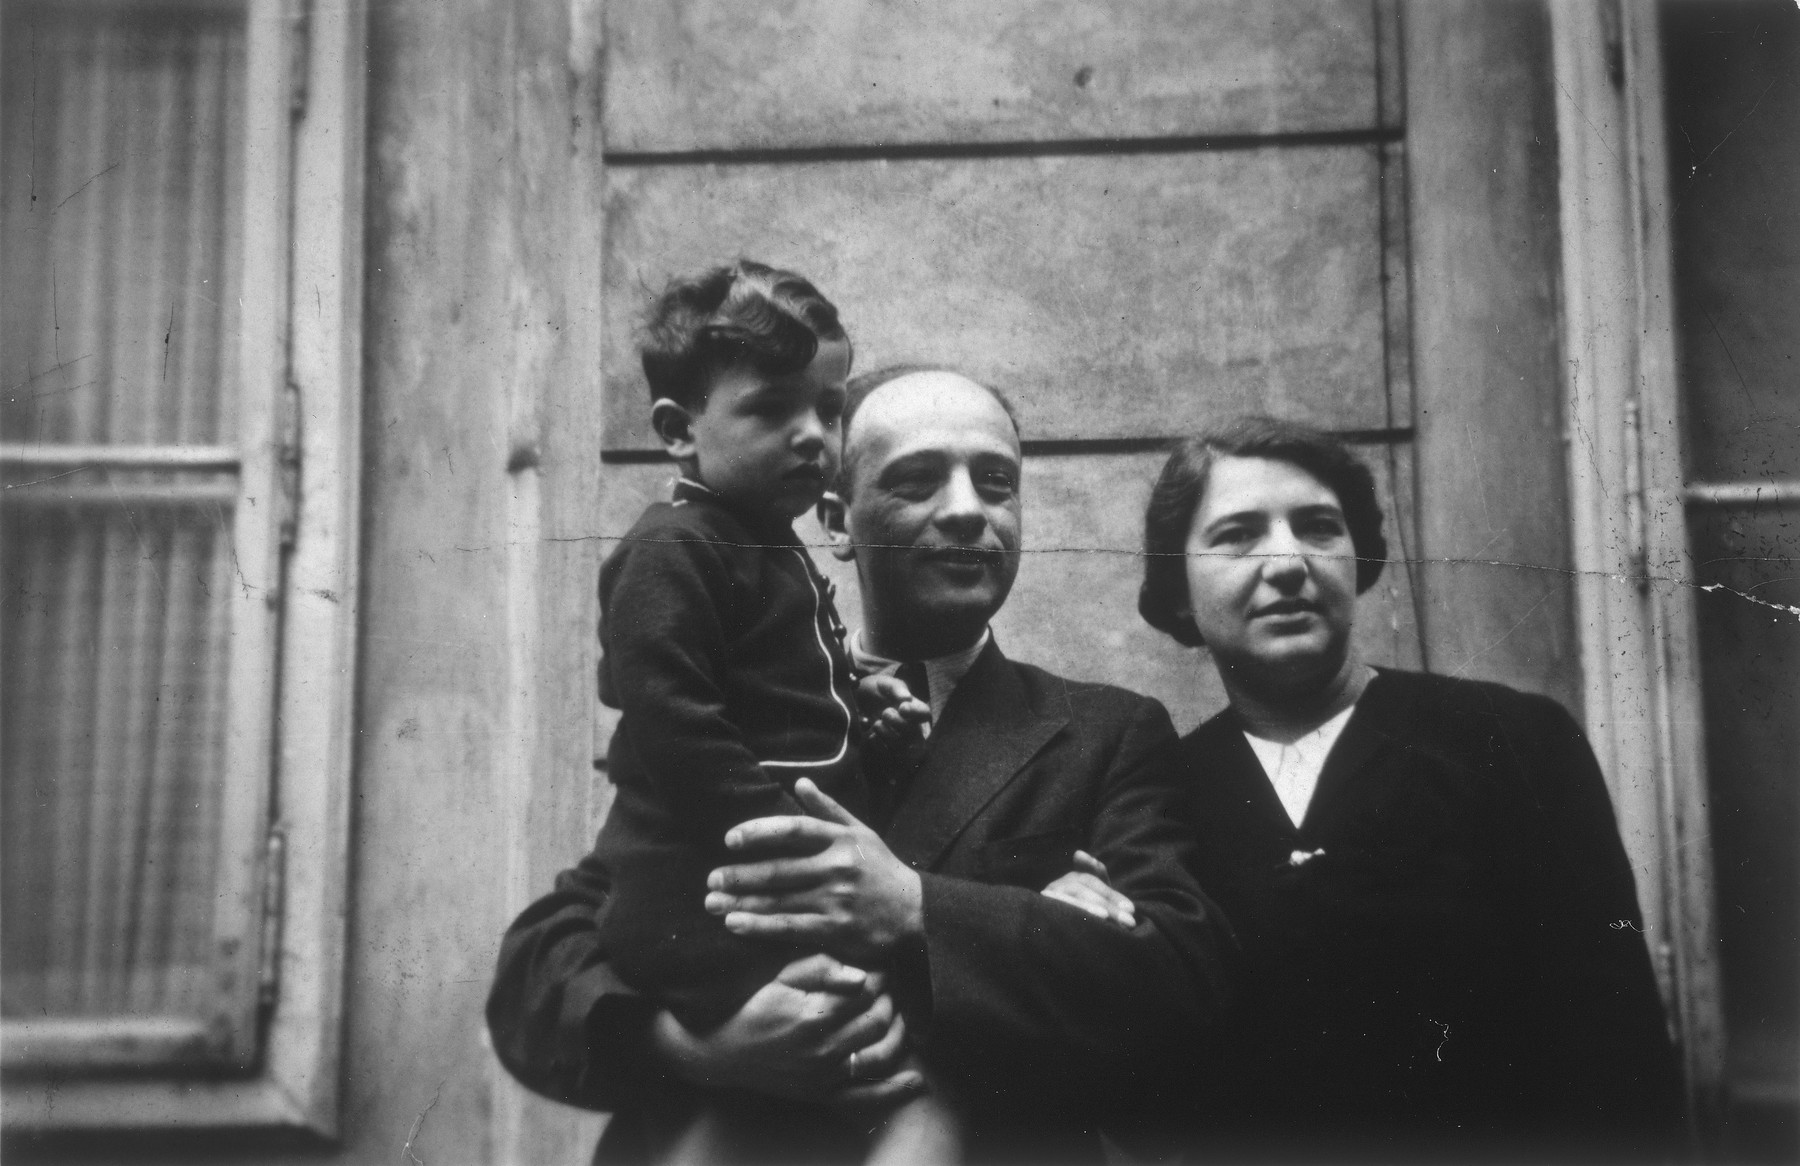 The Blumenstein family, [left to right] Heinz held by his father, Franz, who stands beside Elsa, his mother.